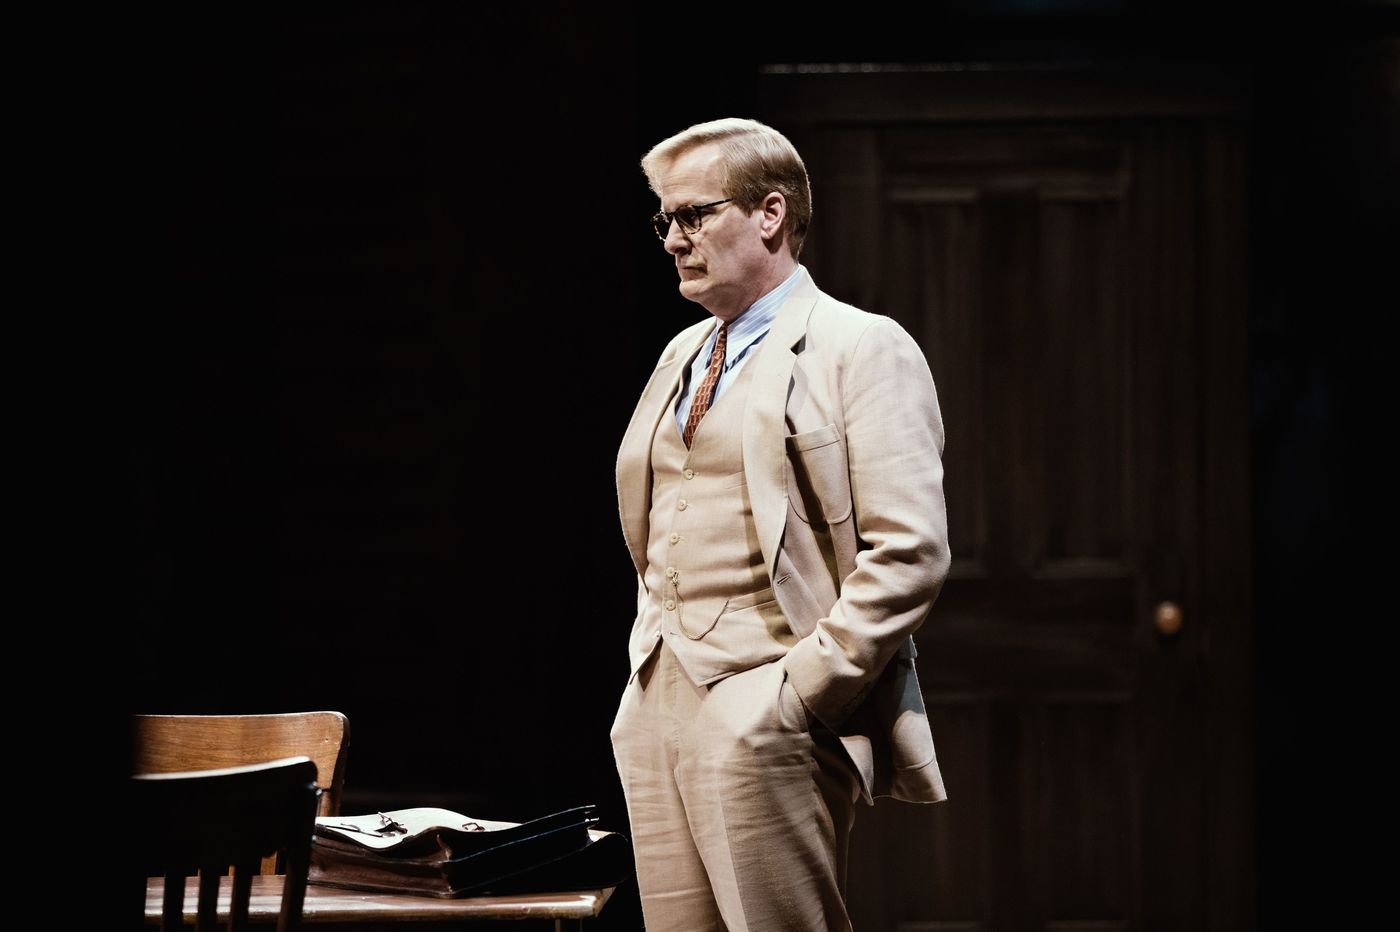 Jeff Daniels on being Broadway's Atticus Finch for hundreds of shows: 'Now I know what I'm doing.'